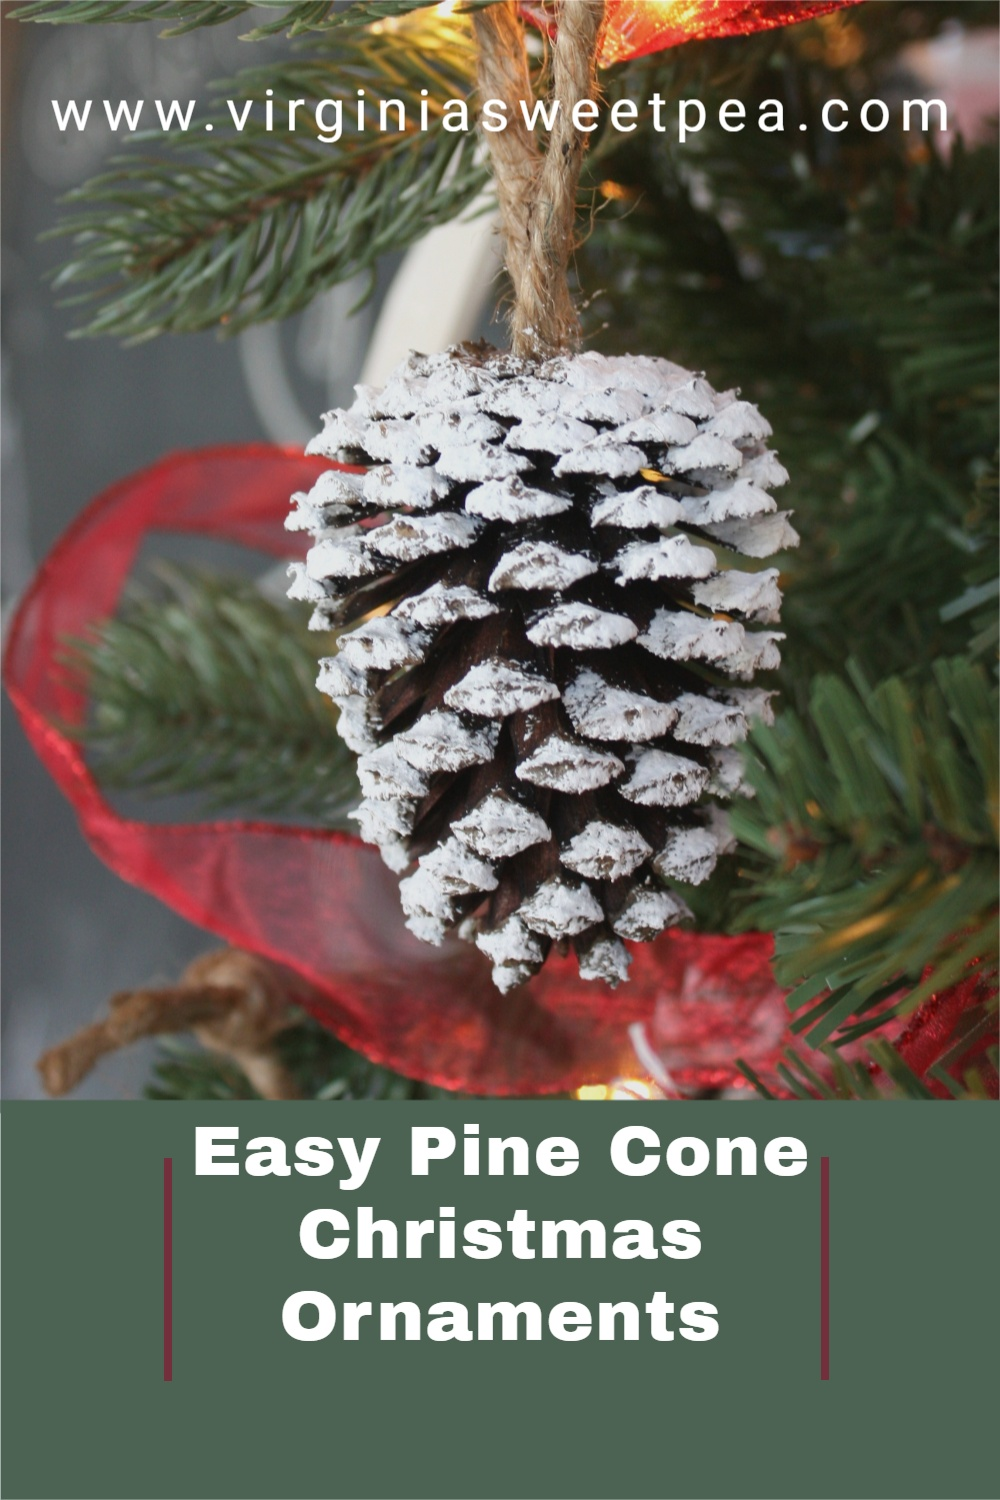 Easy Pine Cone Christmas Ornaments - Use pine cones gathered in the woods to make the easiest Christmas ornaments for your tree.  These snow-kissed ornaments are a Christmas craft easy enough for kids to help to make. via @spaula